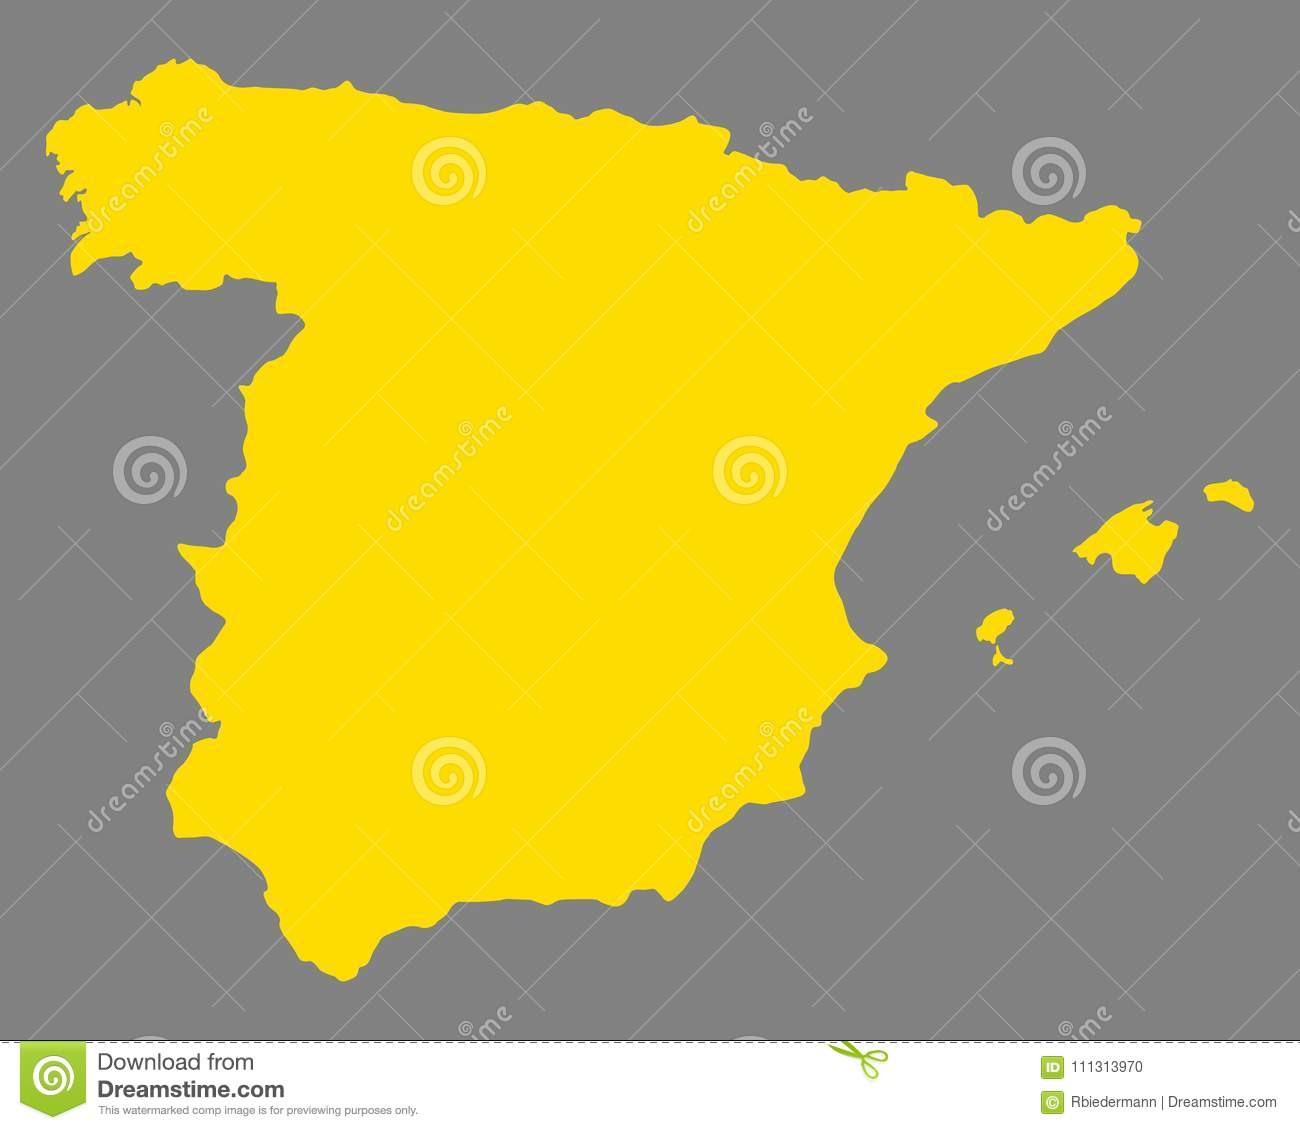 Map Of Spain Geography.Map Of Spain Stock Vector Illustration Of Geography 111313970